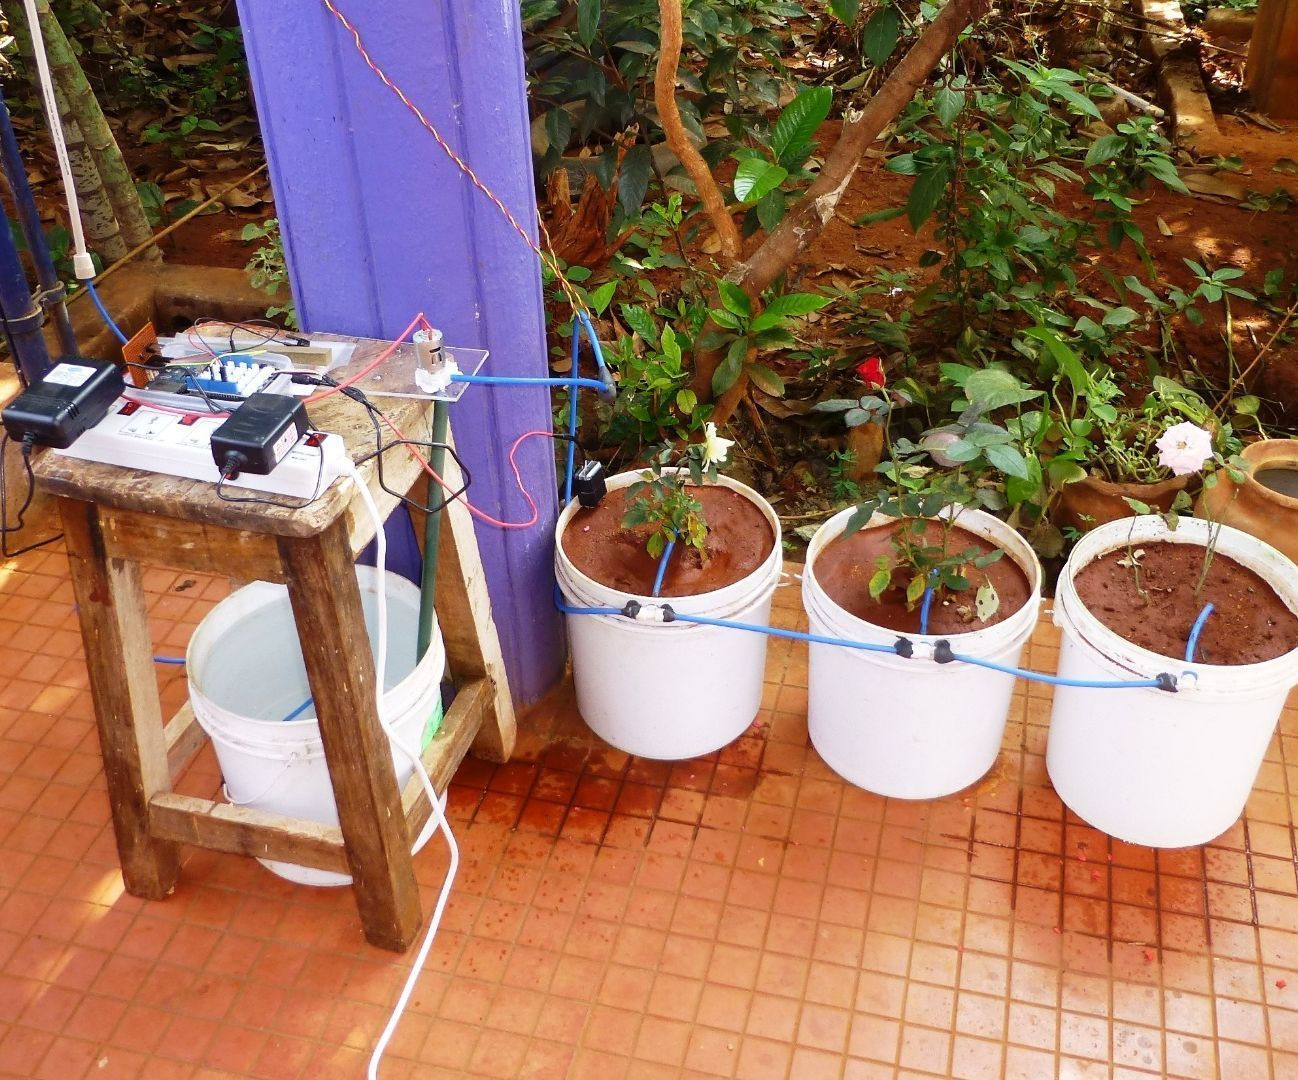 Automated Watering Of Potted Plants With Intel Edison Plants Diy Self Watering Planter Plant Watering System